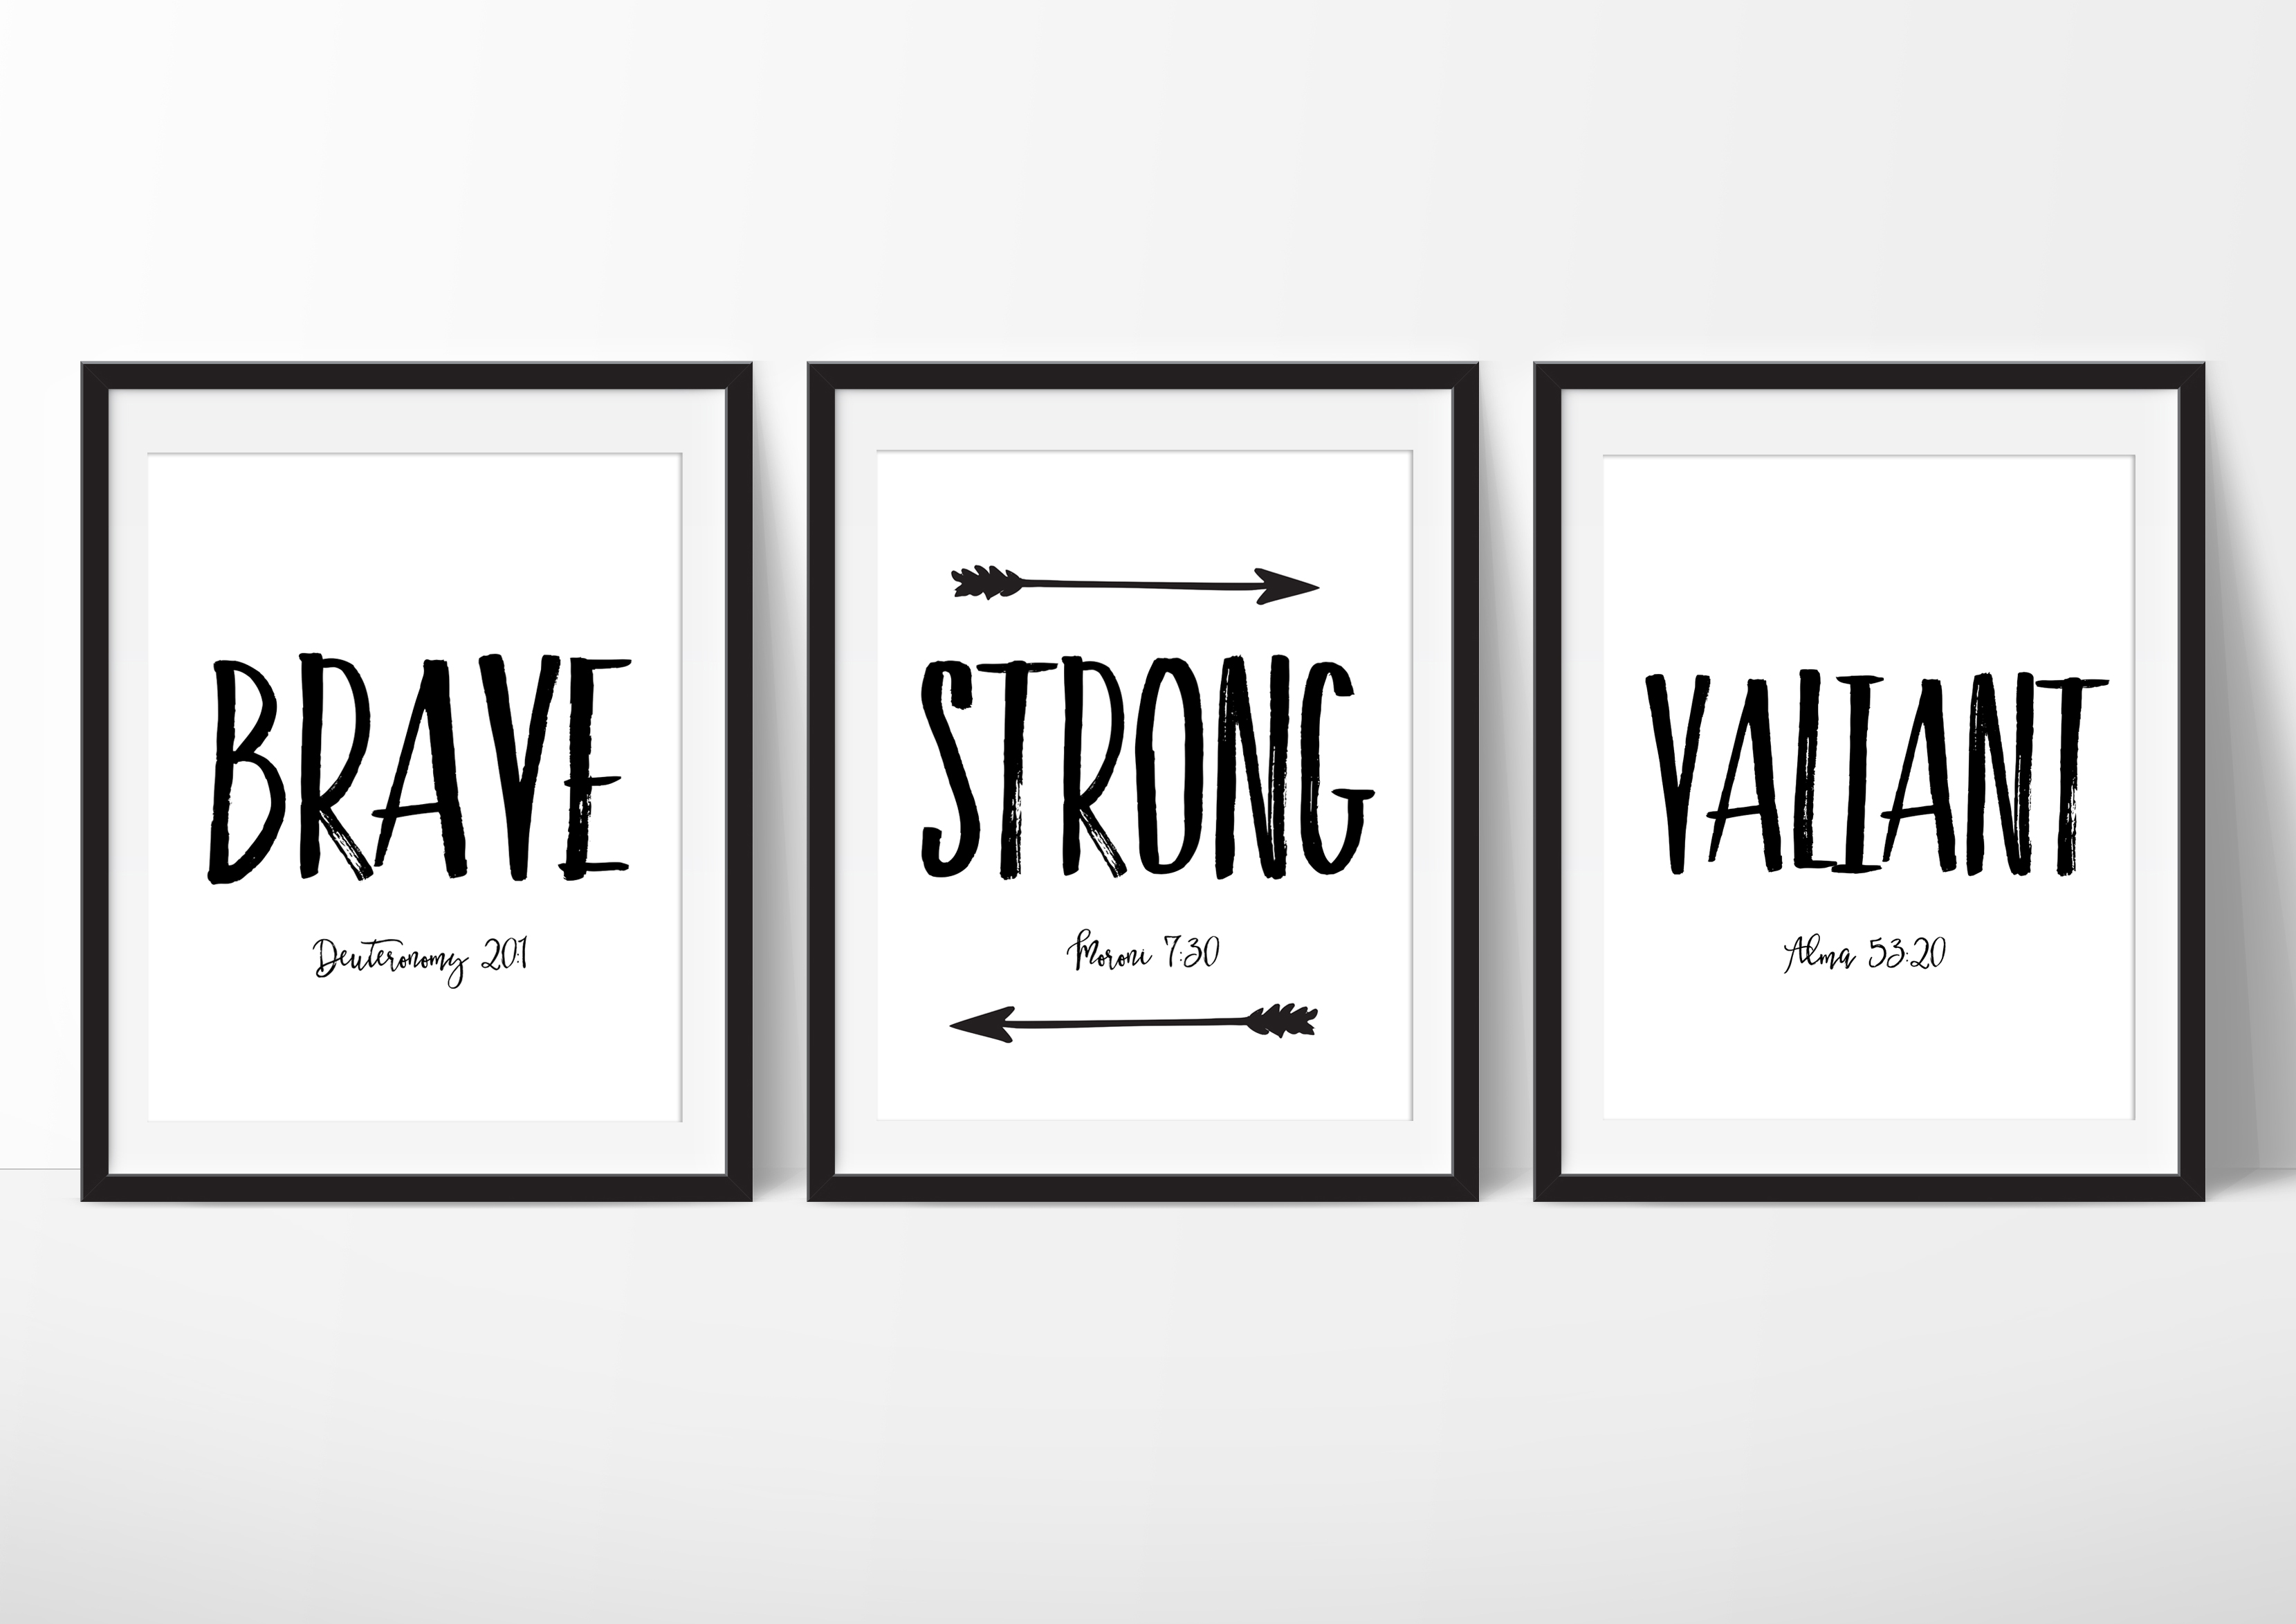 picture relating to Braves Printable Schedule identified as Courageous Sturdy Valiant - Printable